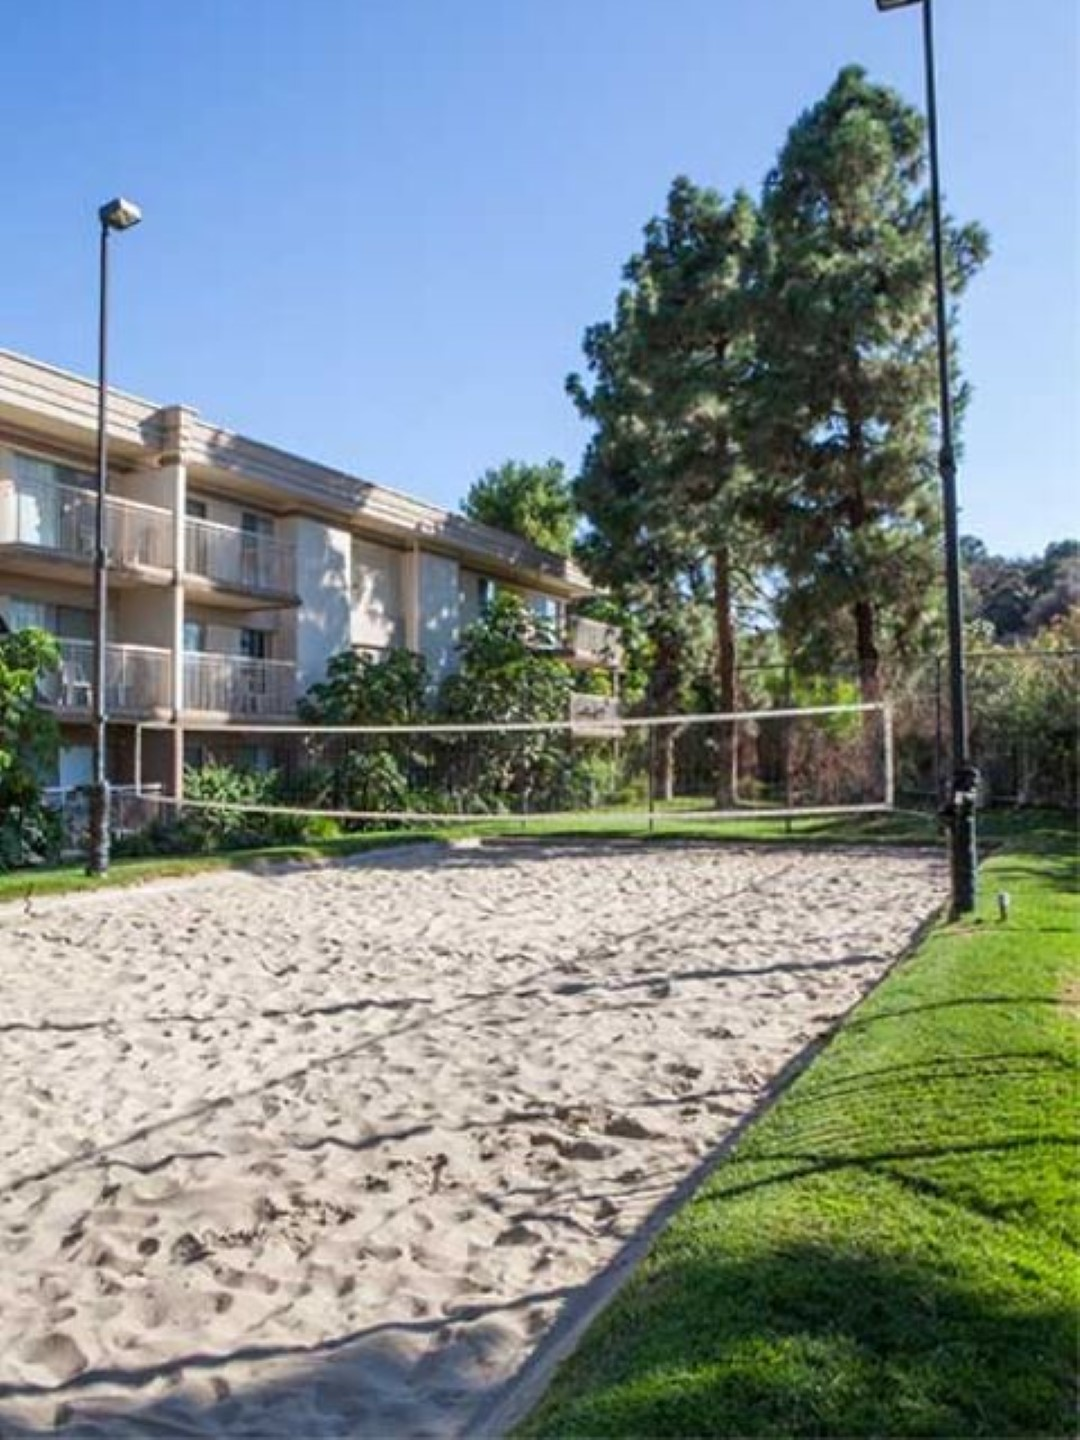 Beach volleyball at Ava Toluca Hills Apartments, Toluca Lake, Los Angeles